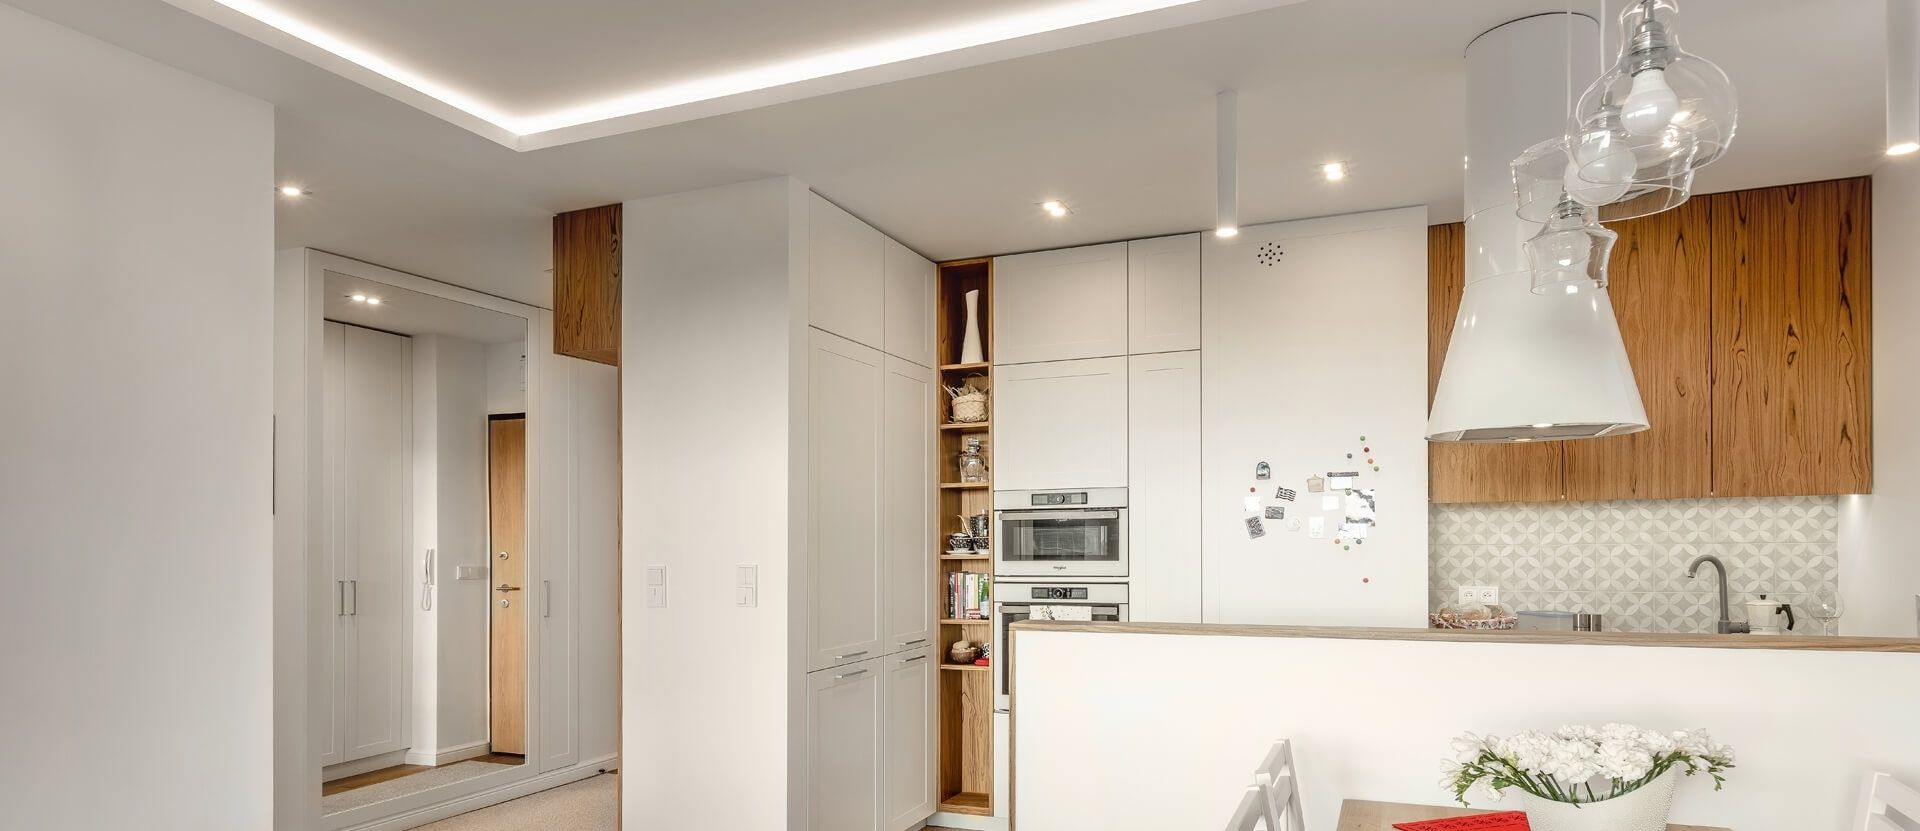 Ceiling GLAX profiles